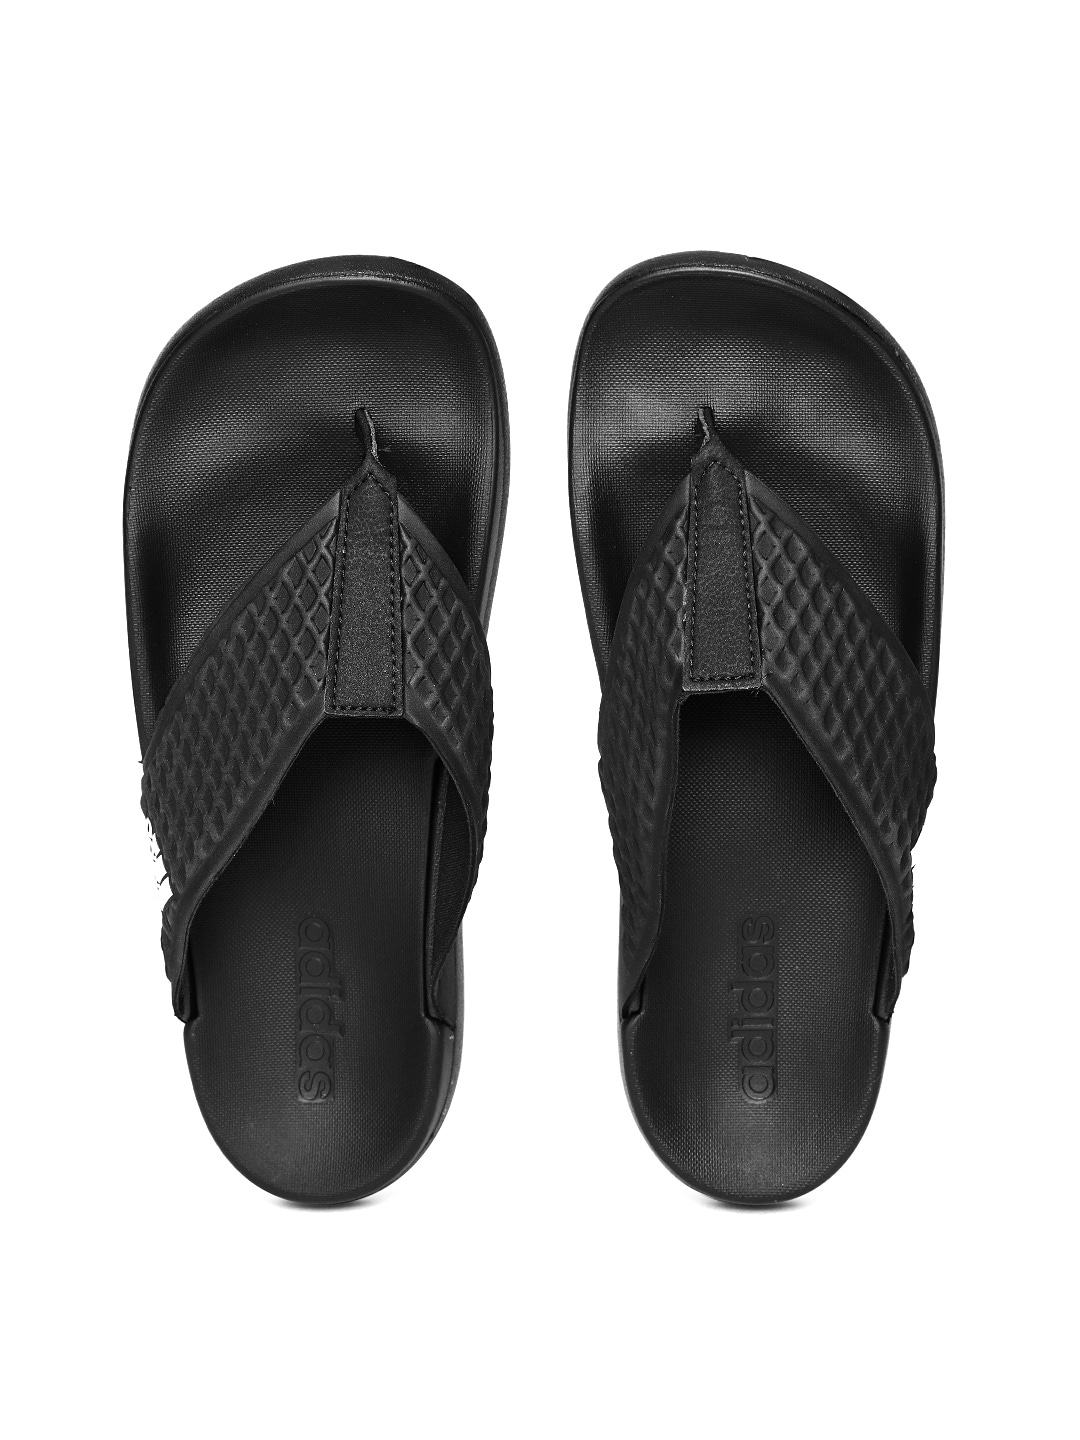 c5f7df2a7330 Adidas Slippers - Buy Adidas Slipper   Flip Flops Online India